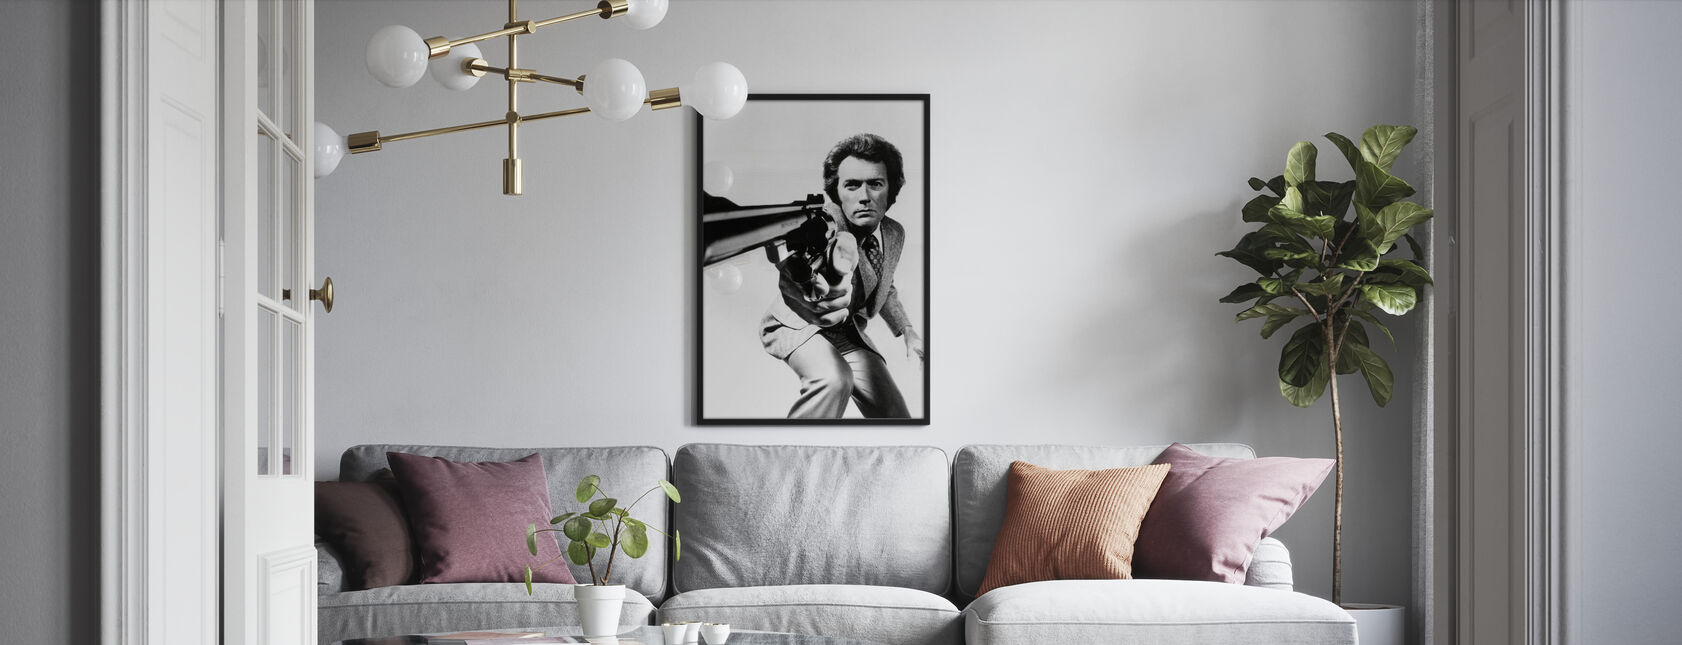 Clint Eastwood in Magnum Force - Poster - Wohnzimmer